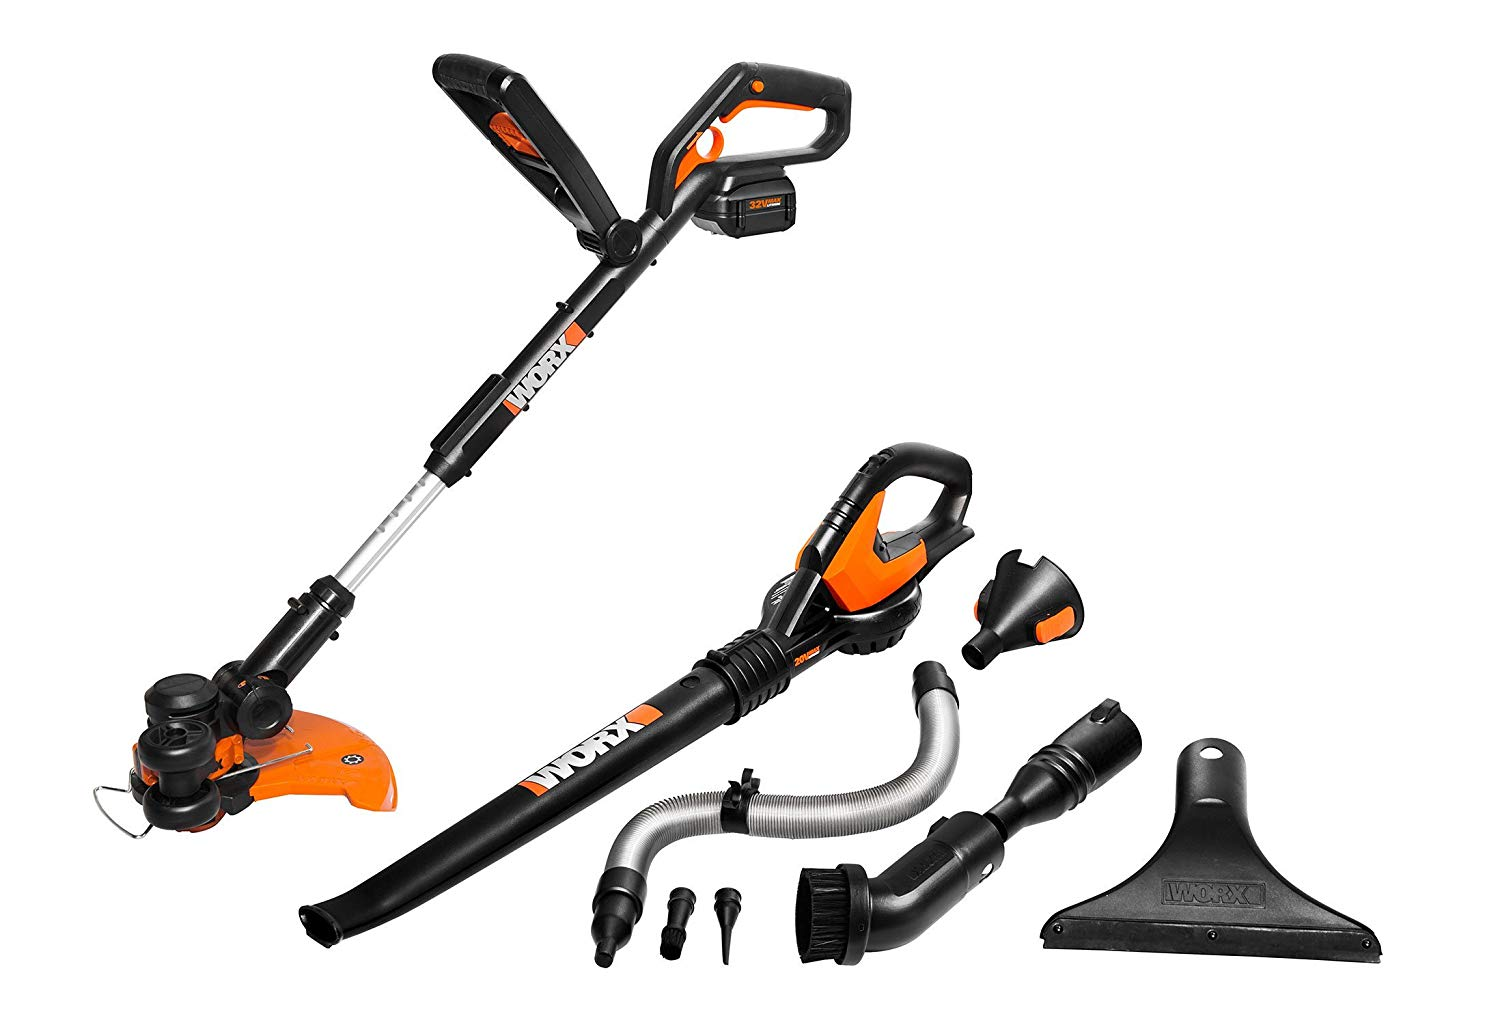 Worx Grass Trimmer Air Blower Cordless Electric Combo Kit